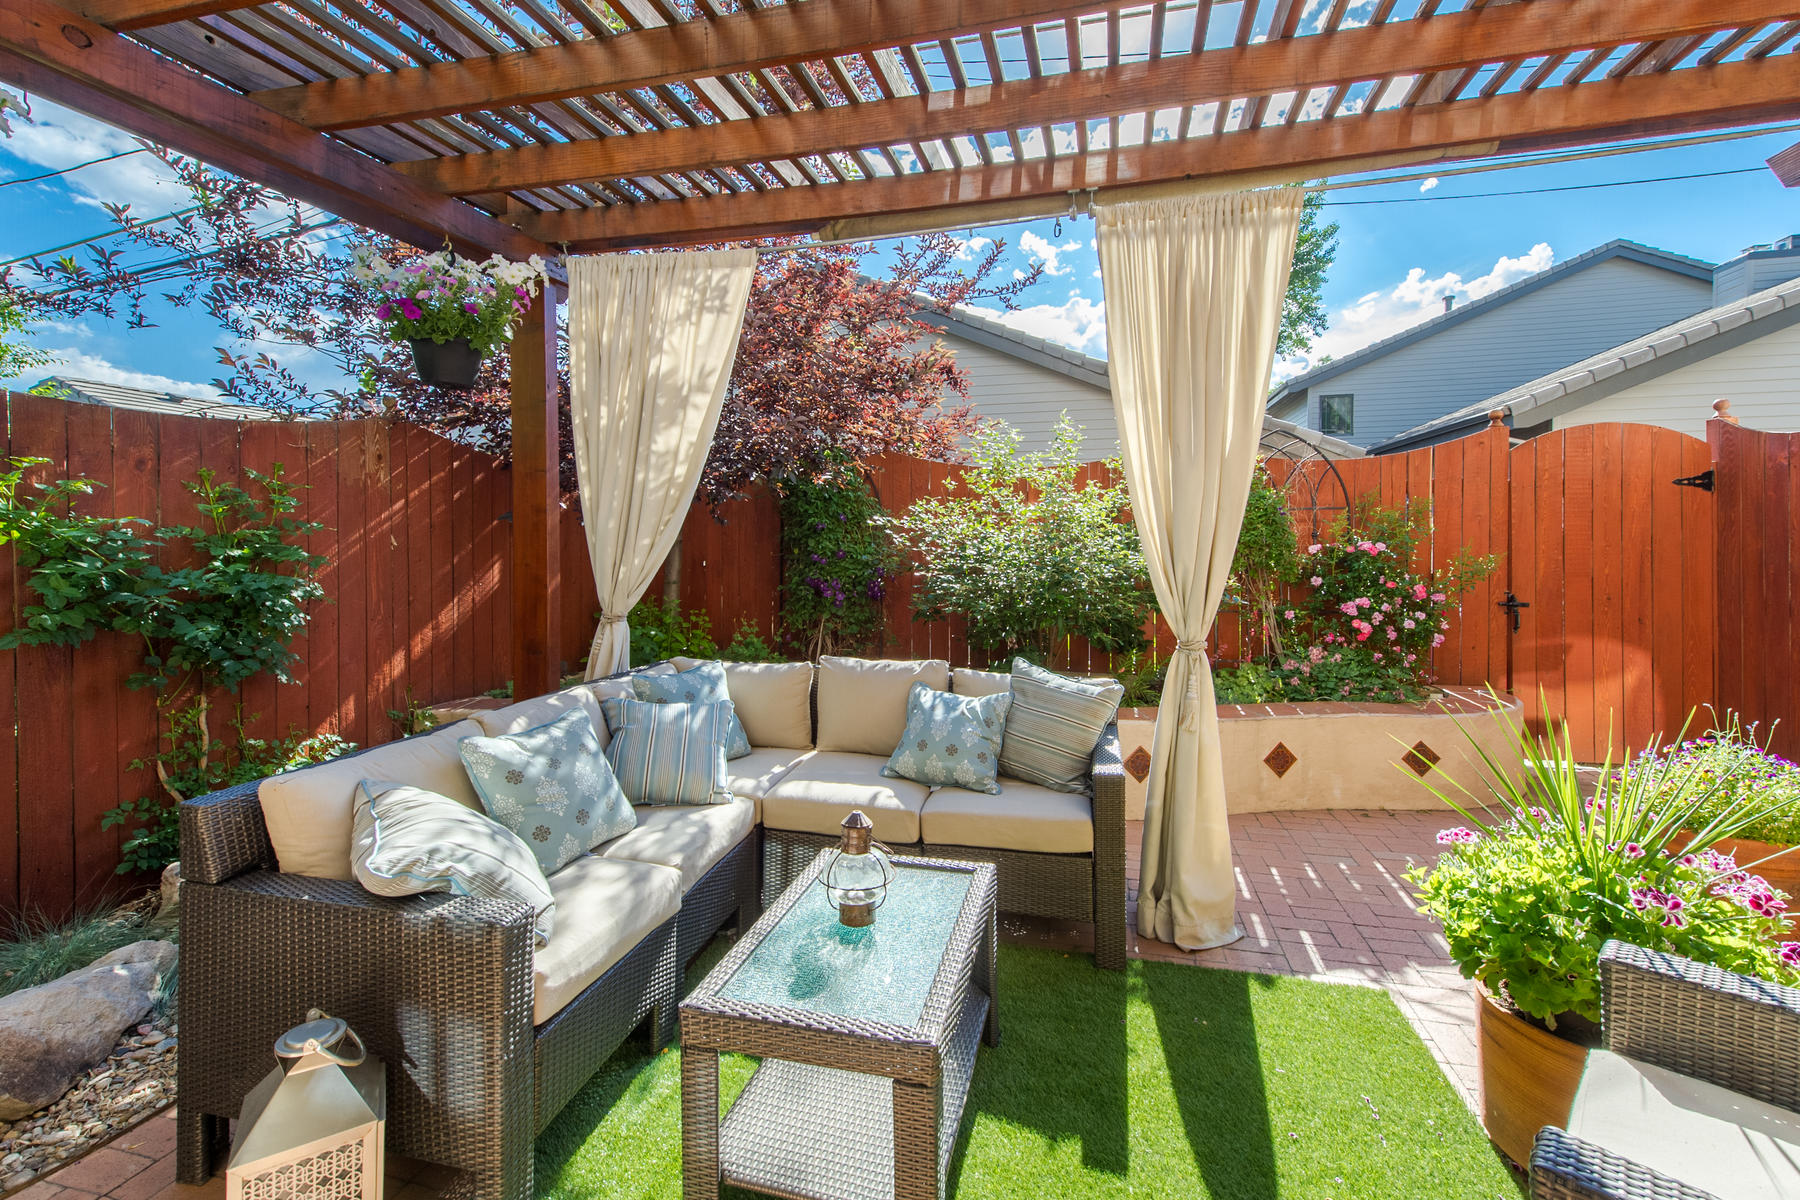 Townhouse for Sale at A Sanctuary In The City! 243 Jackson Street Denver, Colorado, 80206 United States